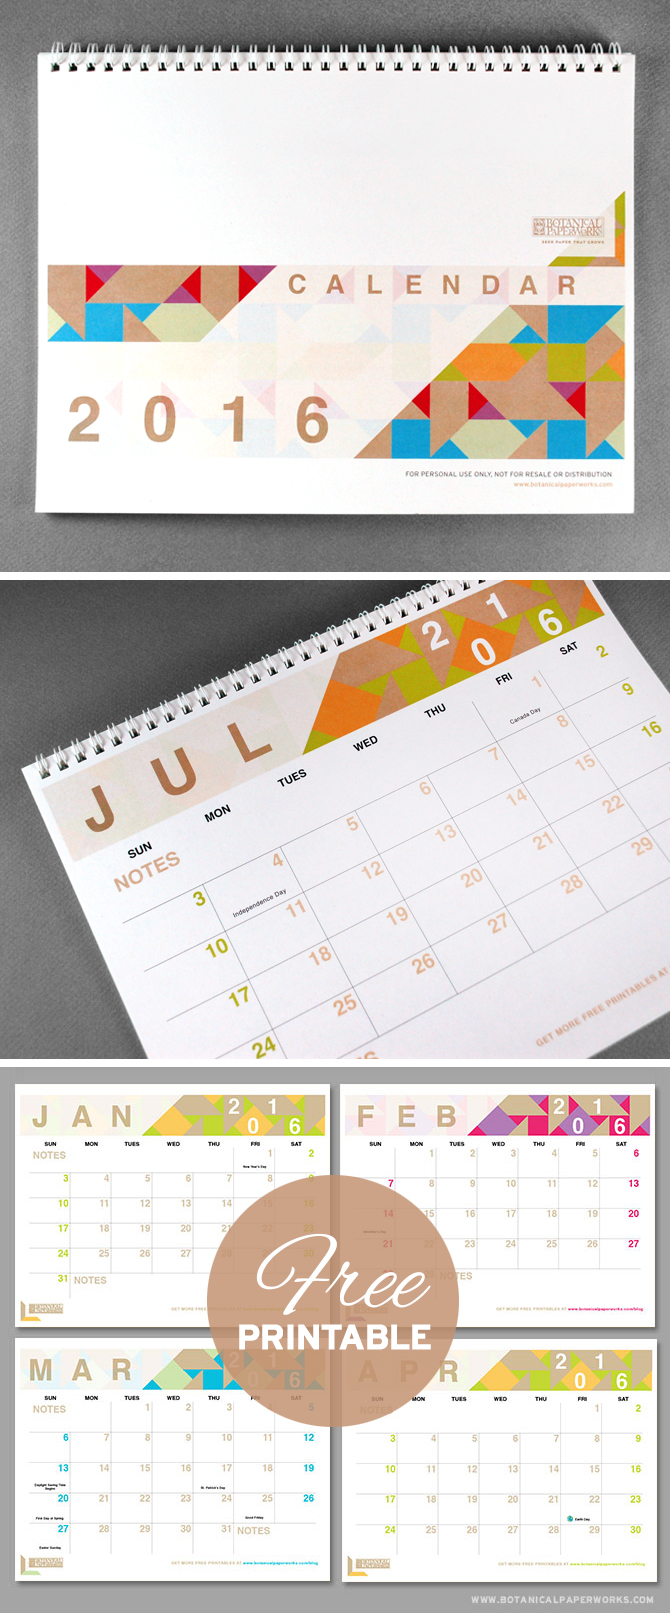 With bright pops of colour and a chic shapes and designs, the #Geometric #Calendar is another one of our most popular #freeprintables that we're excited about offering for the year #2016. Download yours now!